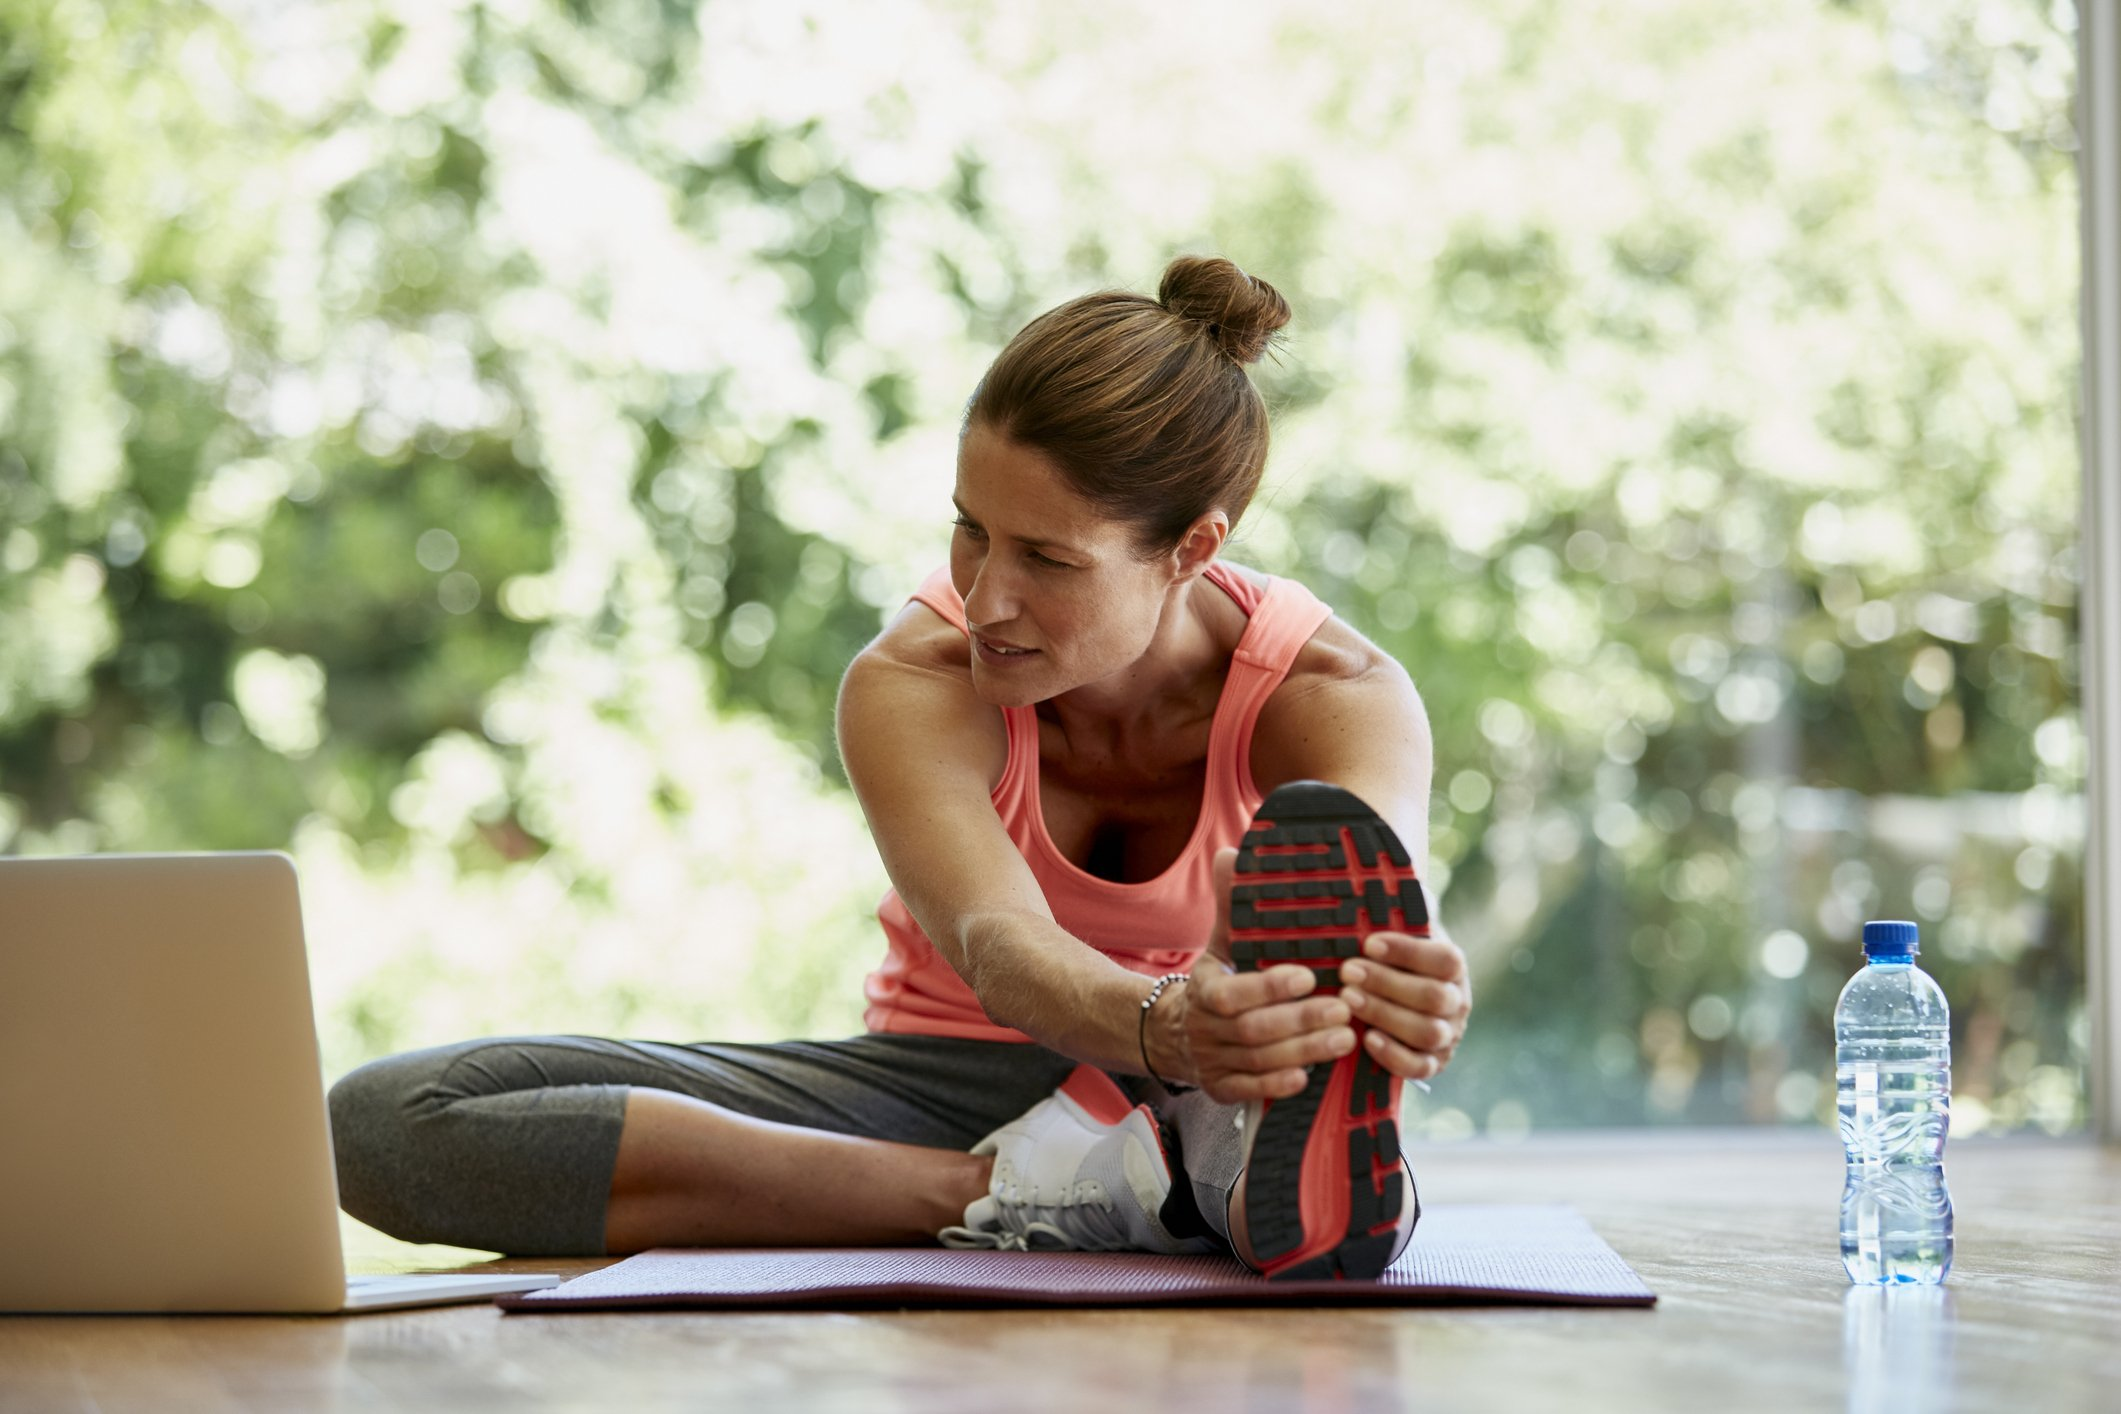 Full length of fit woman looking at laptop while doing stretching exercise at gym